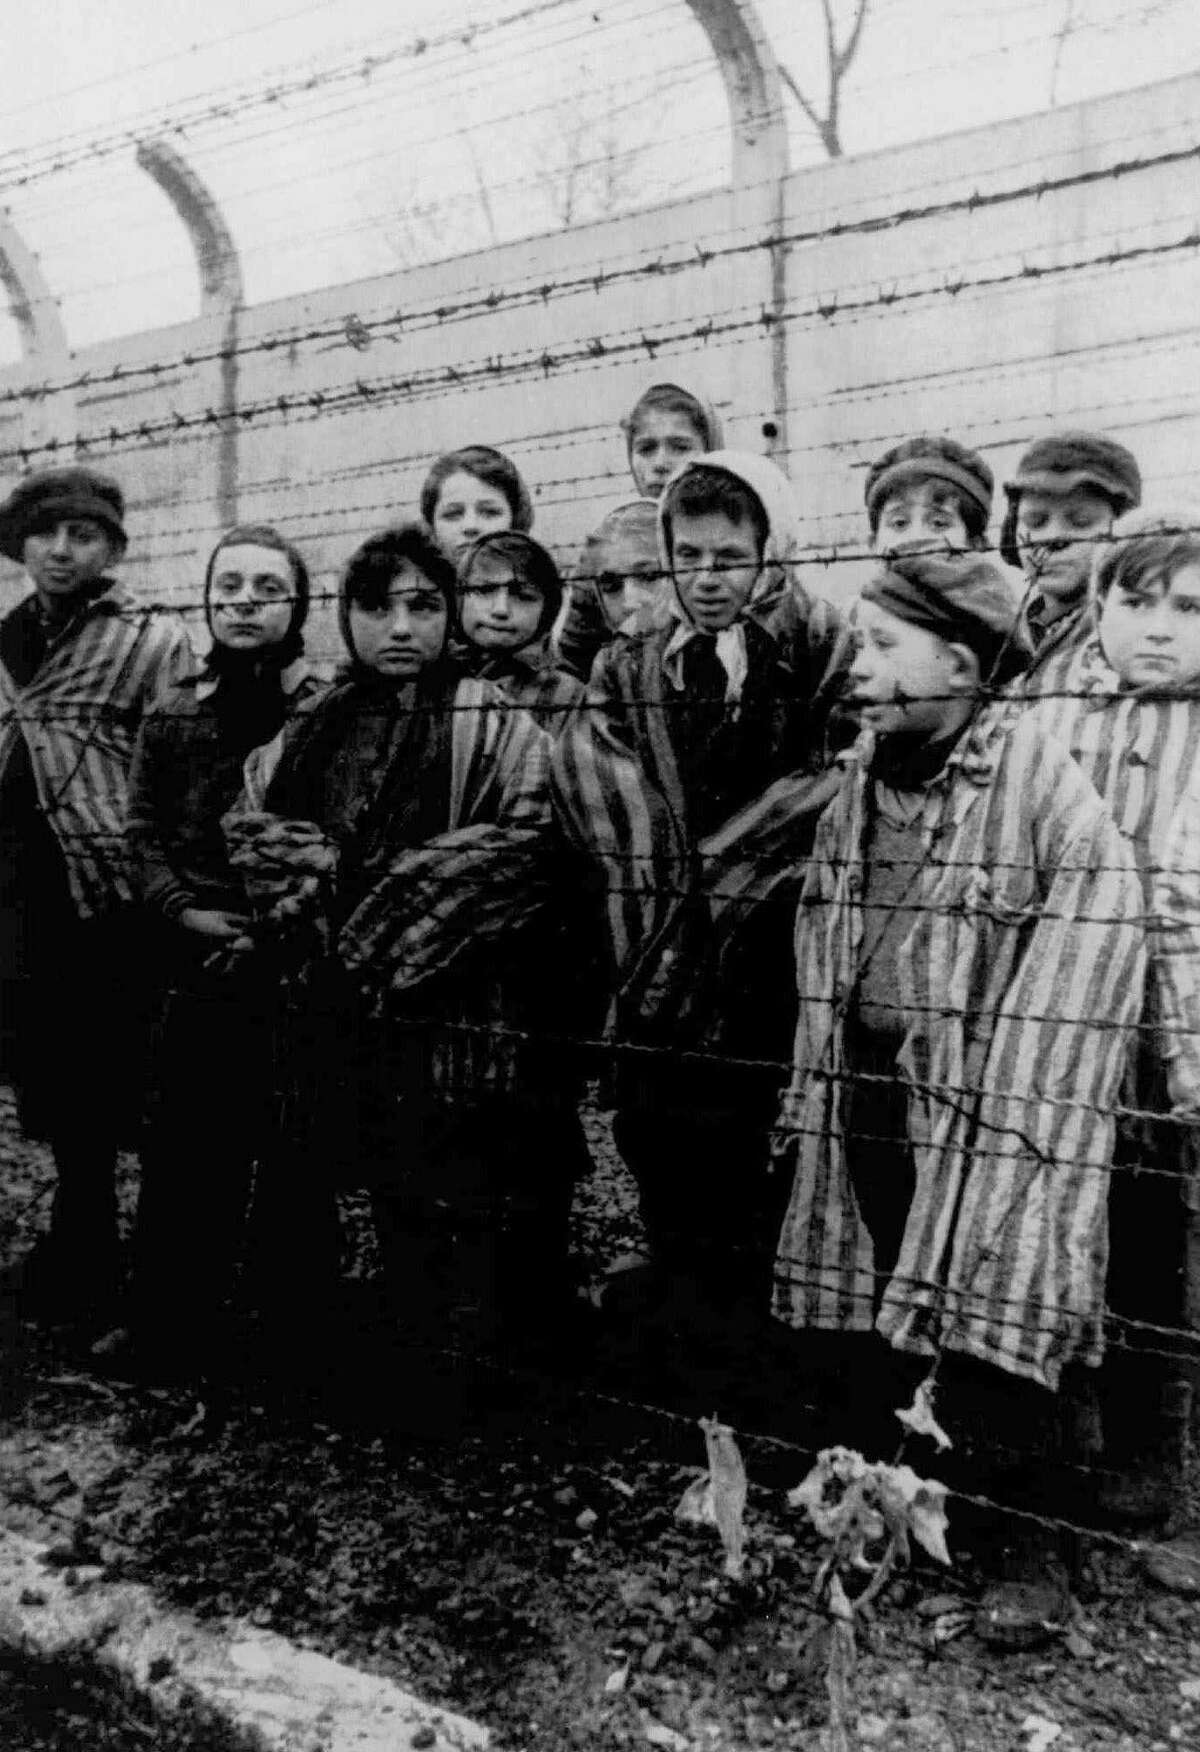 Children are liberated from Auschwitz in 1945. Why do so many public figures speak carelessly about the Holocaust? Don't they know millions were murdered?